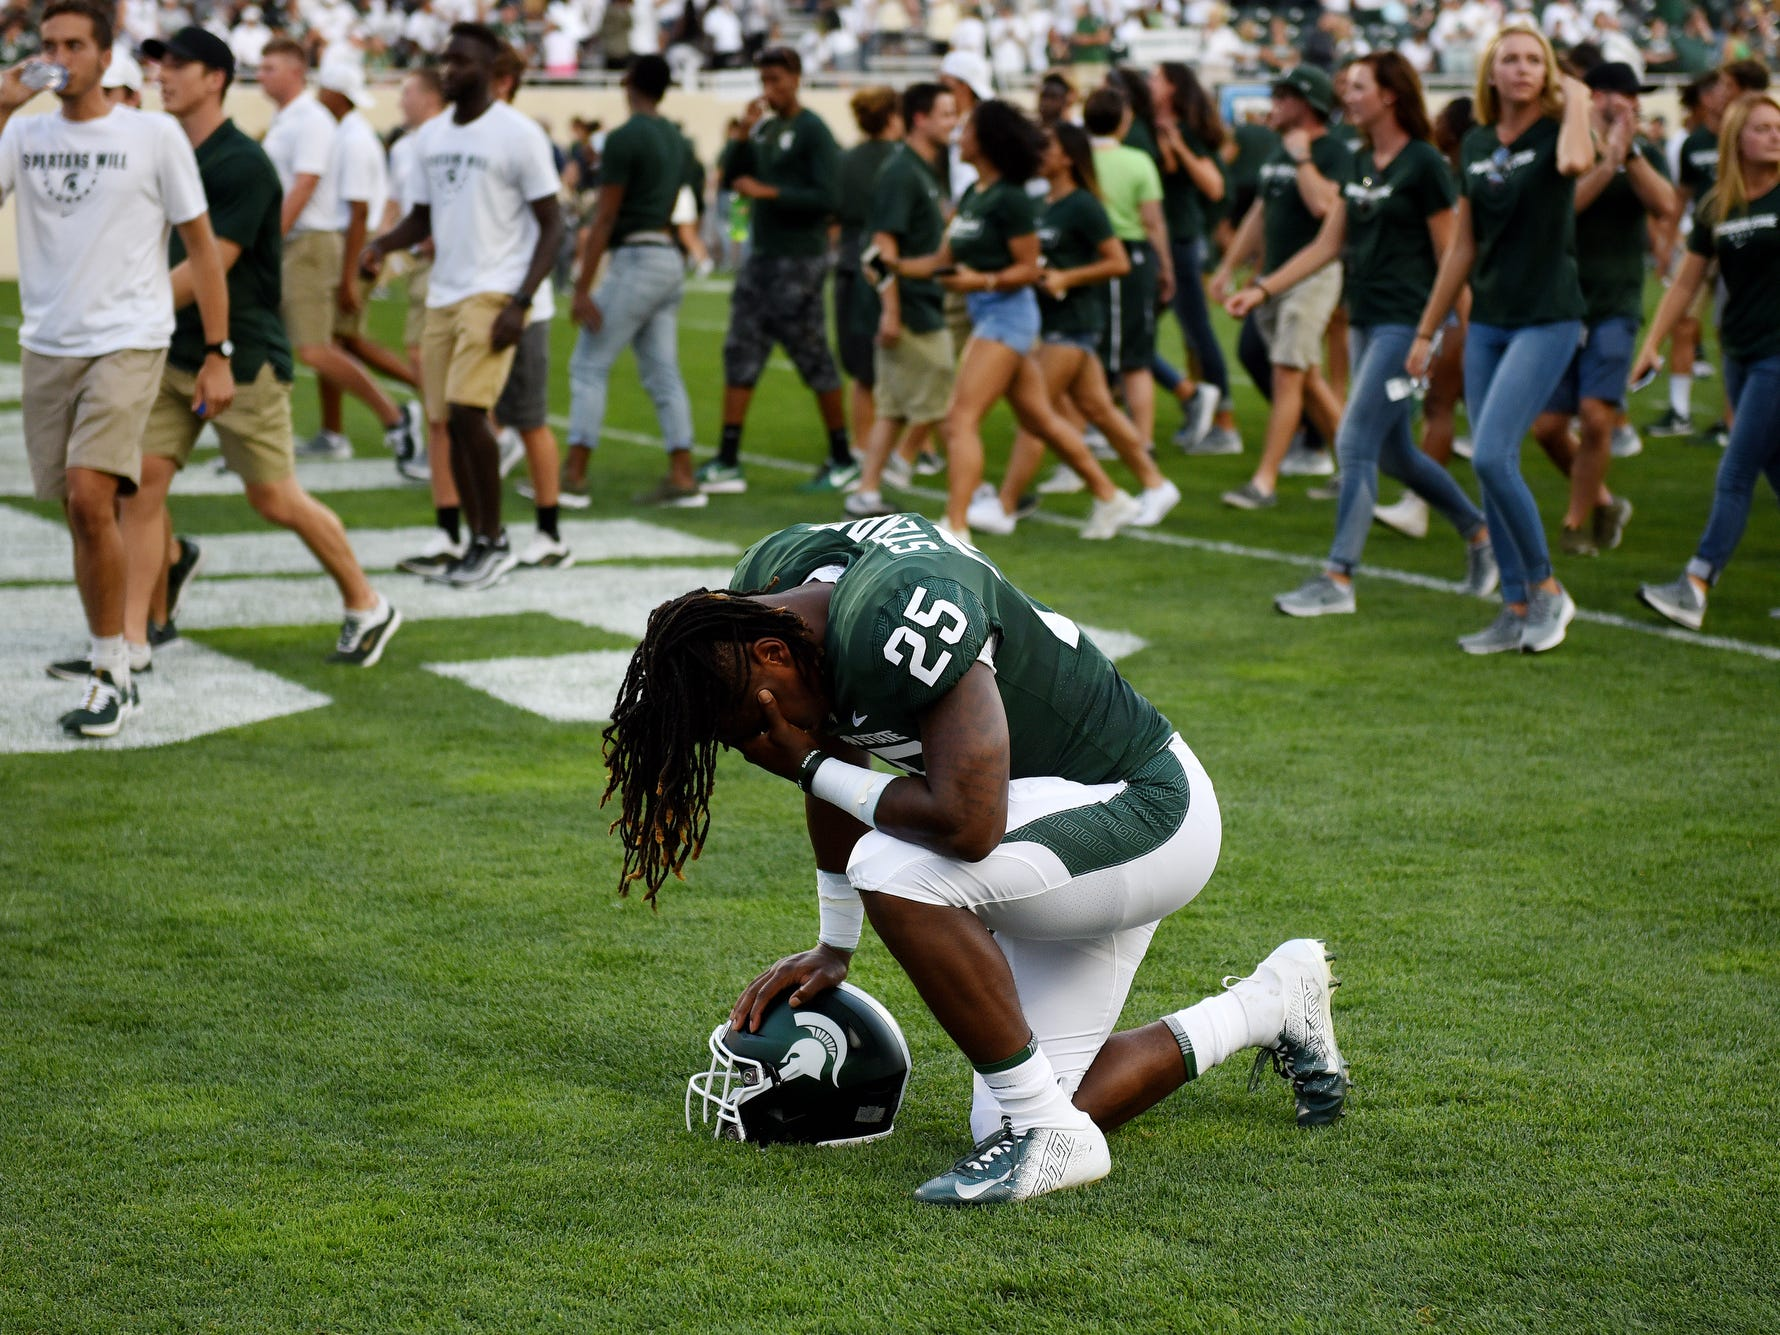 Michigan State's Darrell Stewart Jr. takes time alone in the end zone before the Spartans' game against Utah State on Friday, Aug. 31, 2018, at Spartan Stadium in East Lansing.